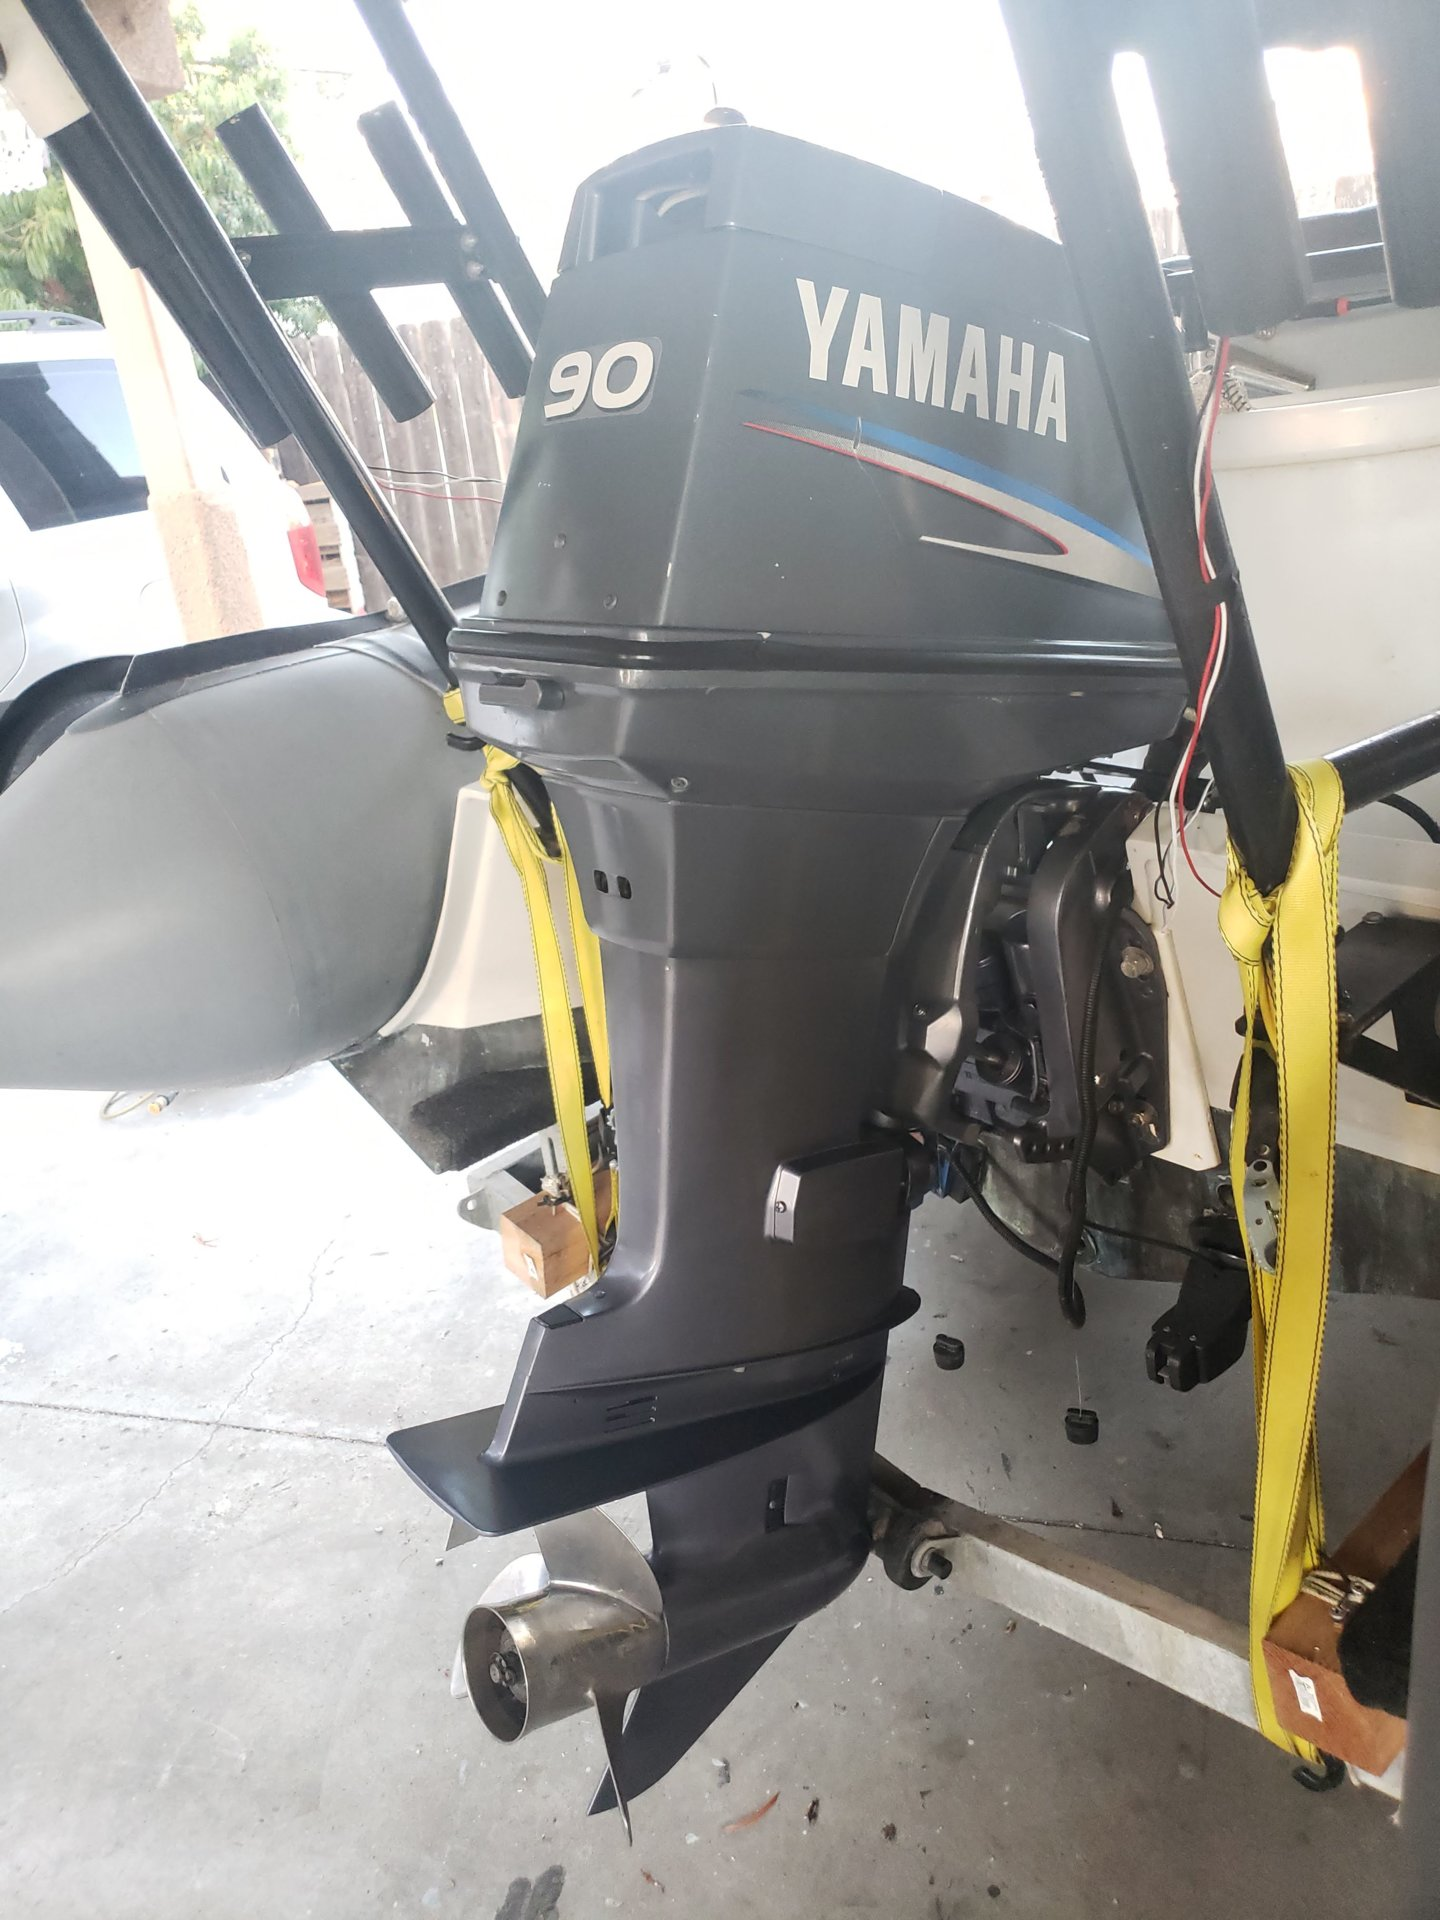 For Sale Yamaha Outboard Motor 90hp With All Wiring Binnacle 3350 Bloodydecks